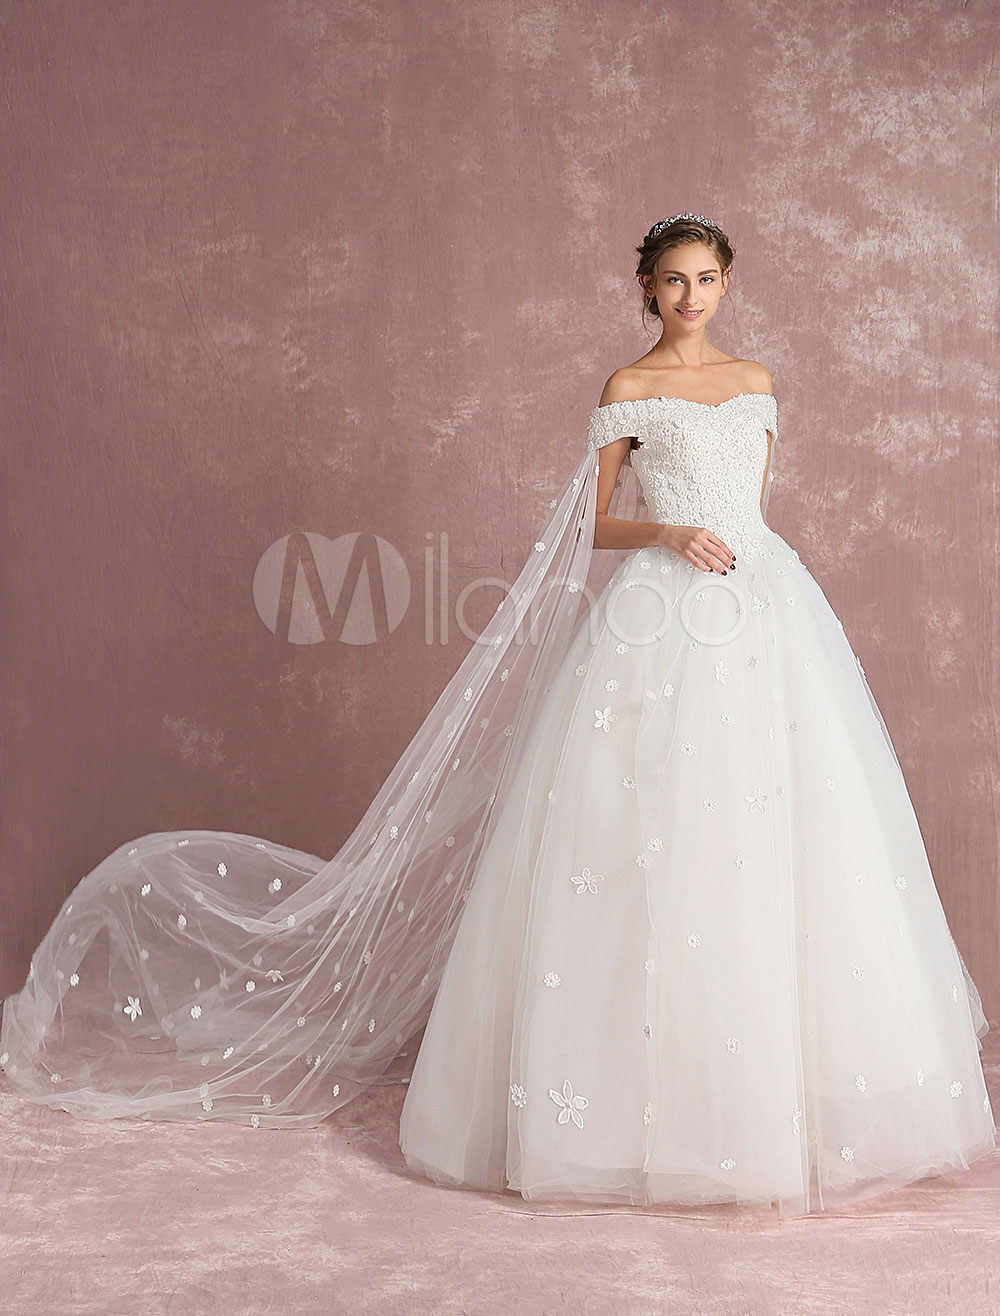 Buy Ball Gown Wedding Dress Off The Shoulder Bridal Dress Watteau Train White Tulle Lace Flower Applique Floor Length Bridal Gown for $197.99 in Milanoo store